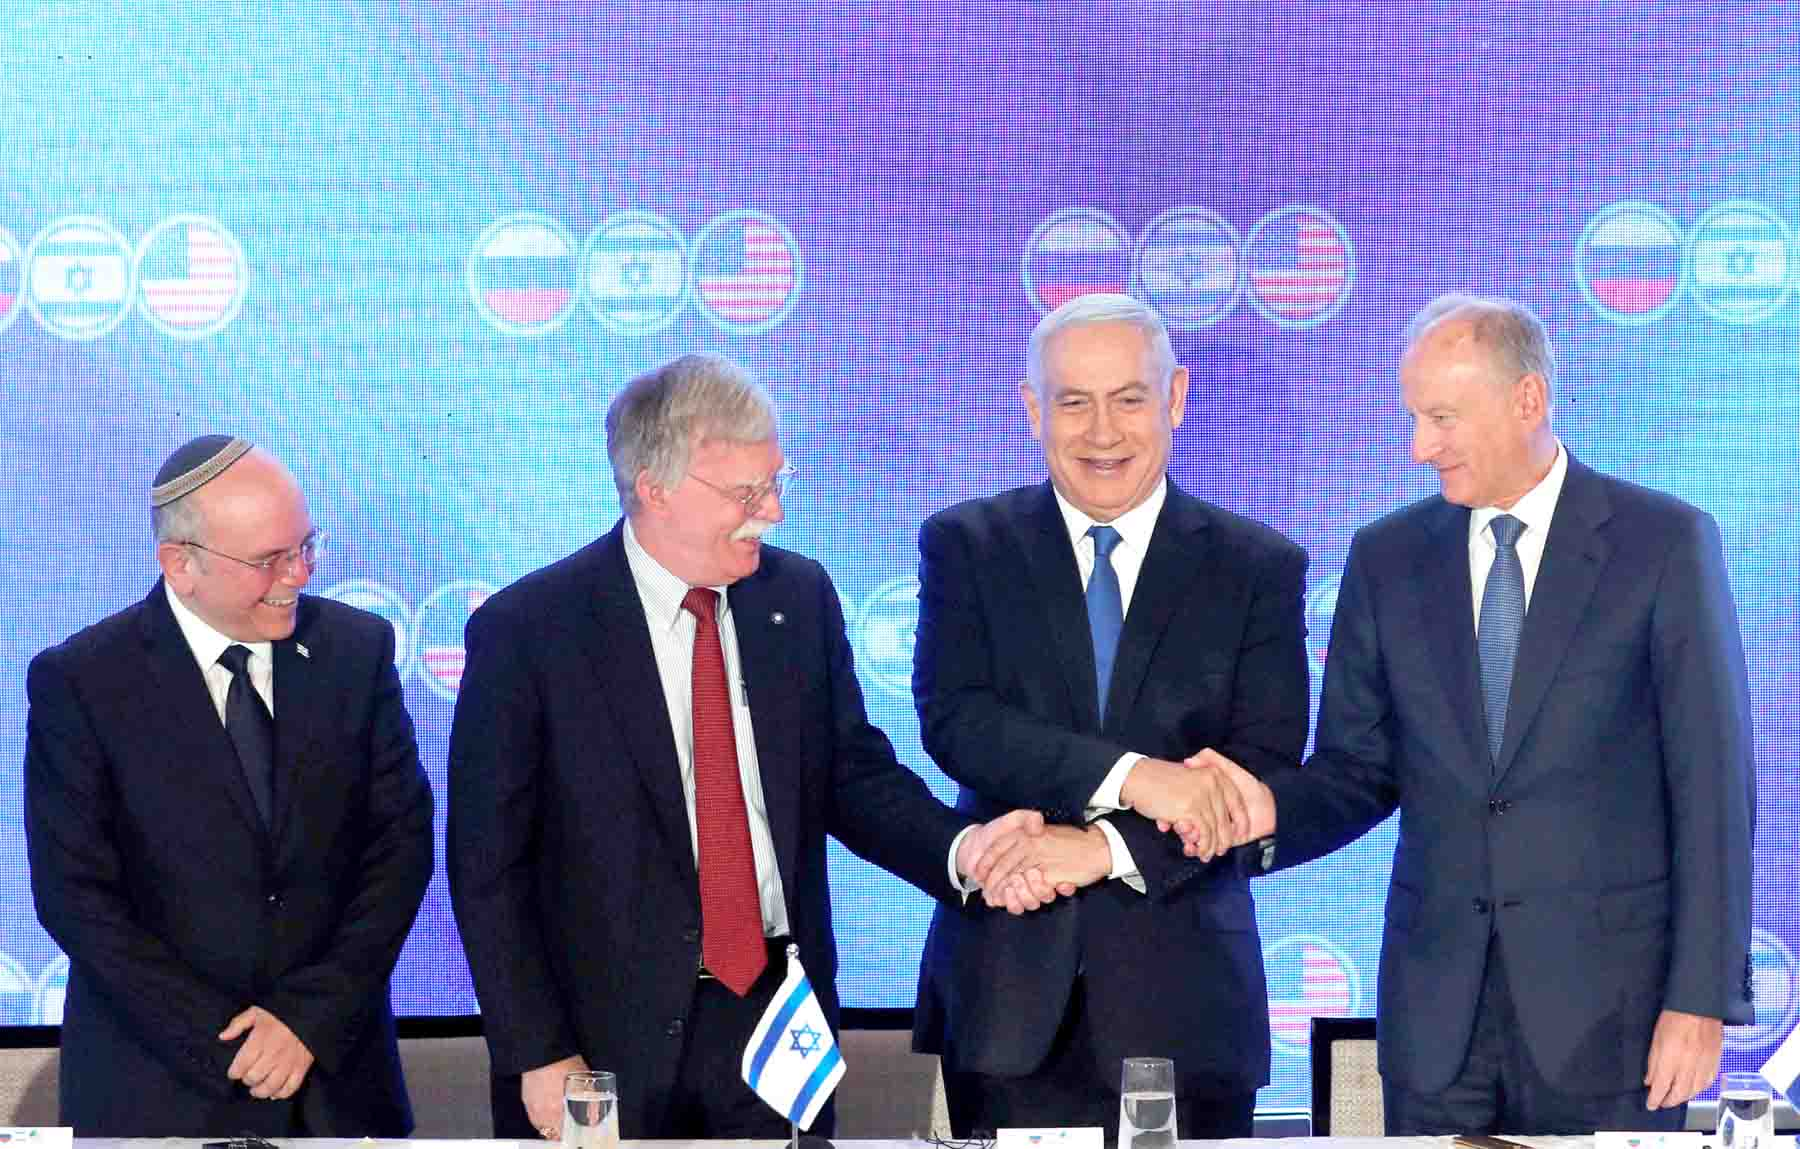 Israeli Prime Minister Binyamin Netanyahu shakes hands with US national security adviser John Bolton and Nikolai Patrushev, secretary of the Russian Security Council, as Israeli national security adviser Meir Ben-Shabbat stands nearby during opening statements of a trilateral meeting between American, Israeli and Russian top security advisers in Jerusalem June 25, 2019. (Reuters)